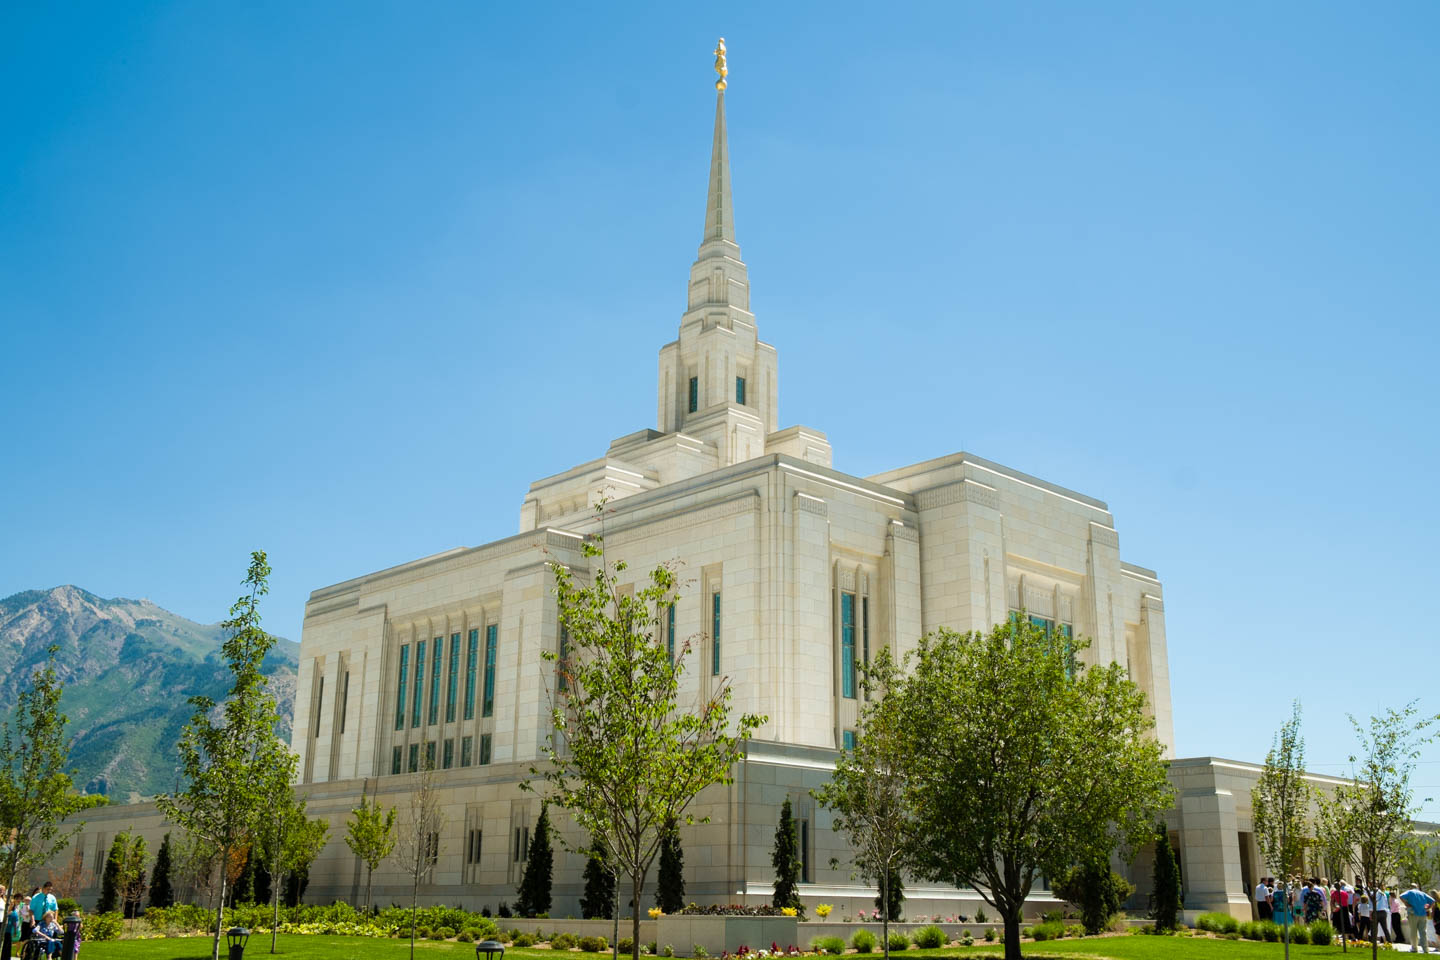 Back of the Ogden Temple